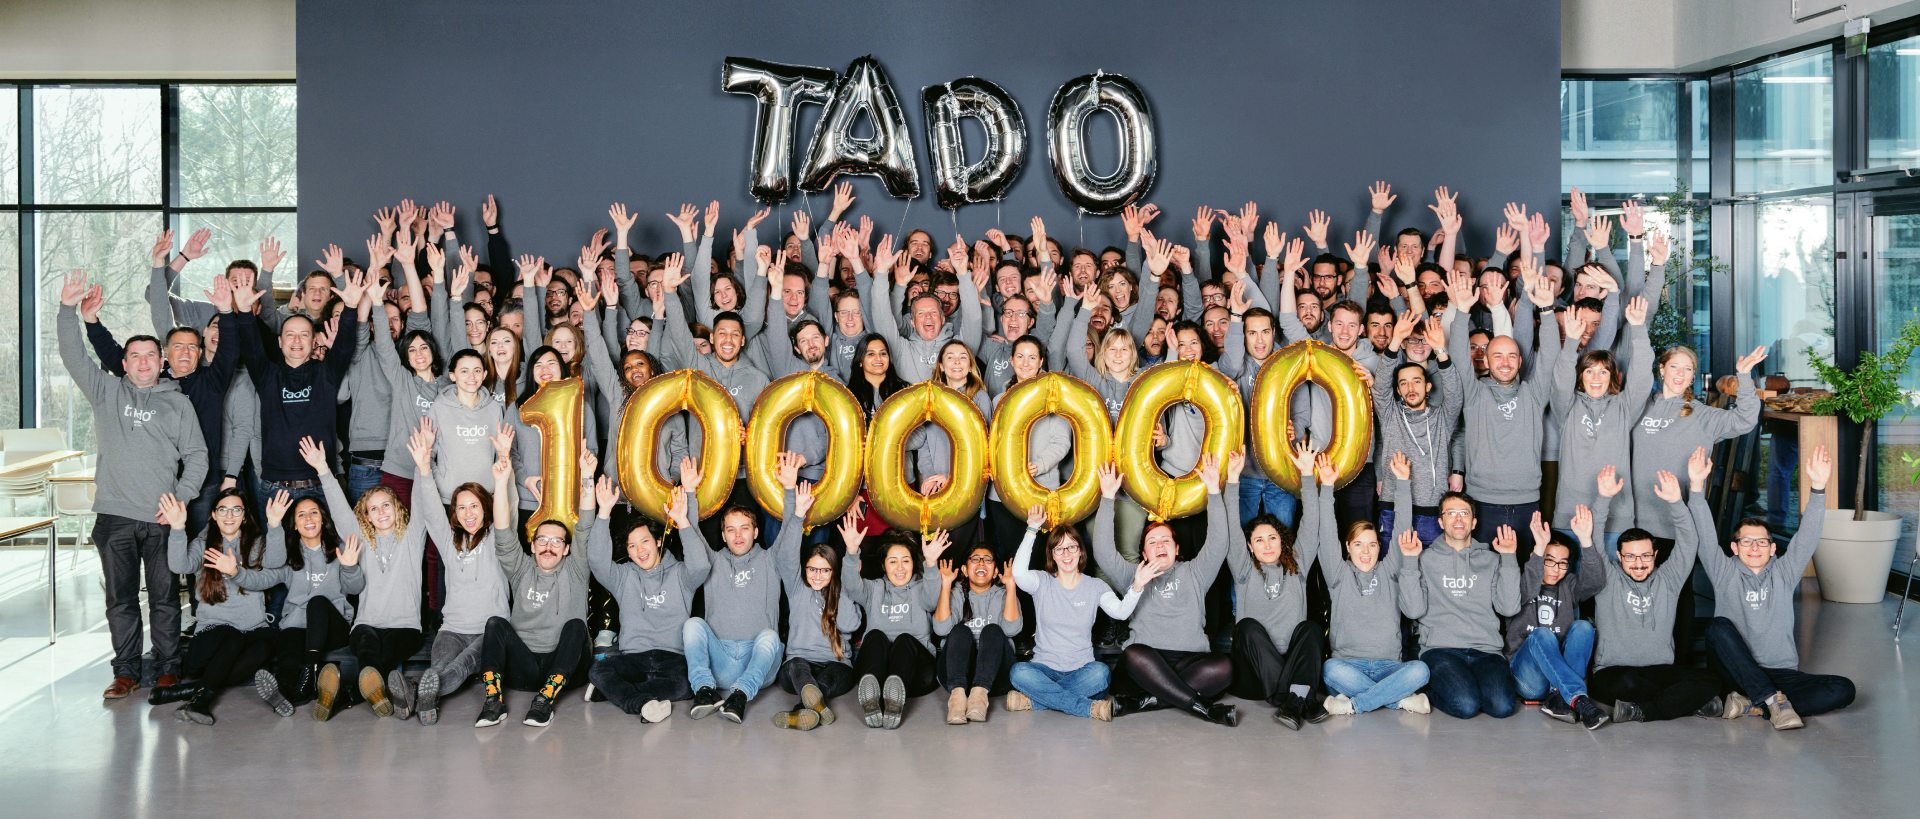 tado° smart thermostats surpass 1 million unit sales milestone